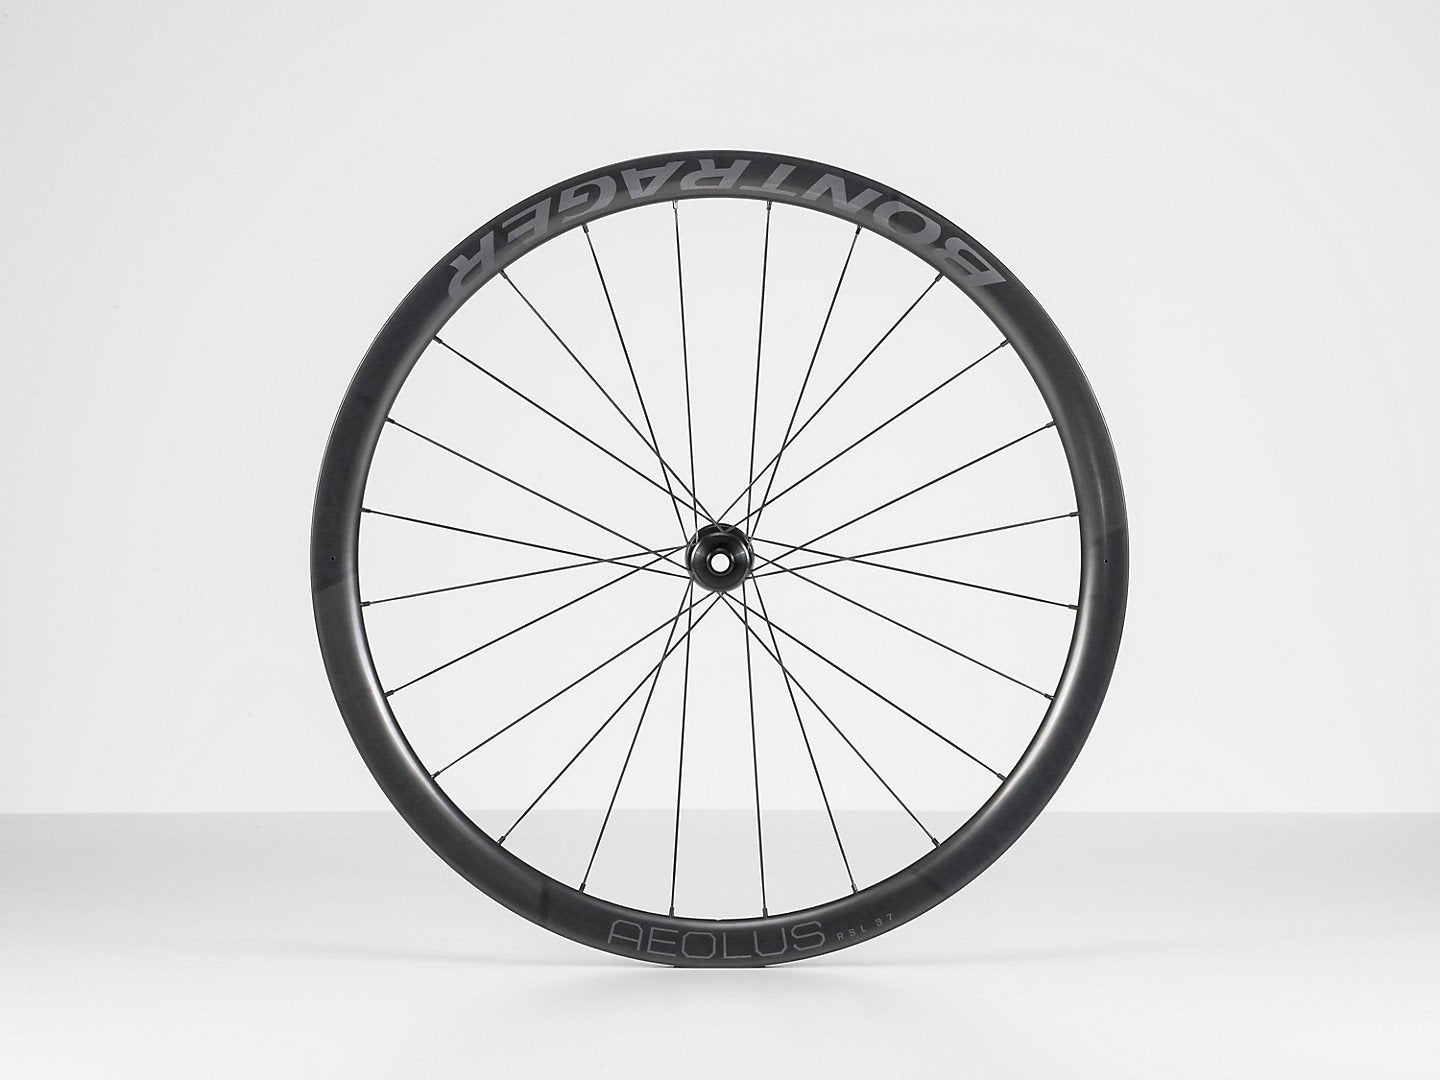 Bontrager Aeolus RSL 37 Disc Wheel - Cycles Galleria Melbourne